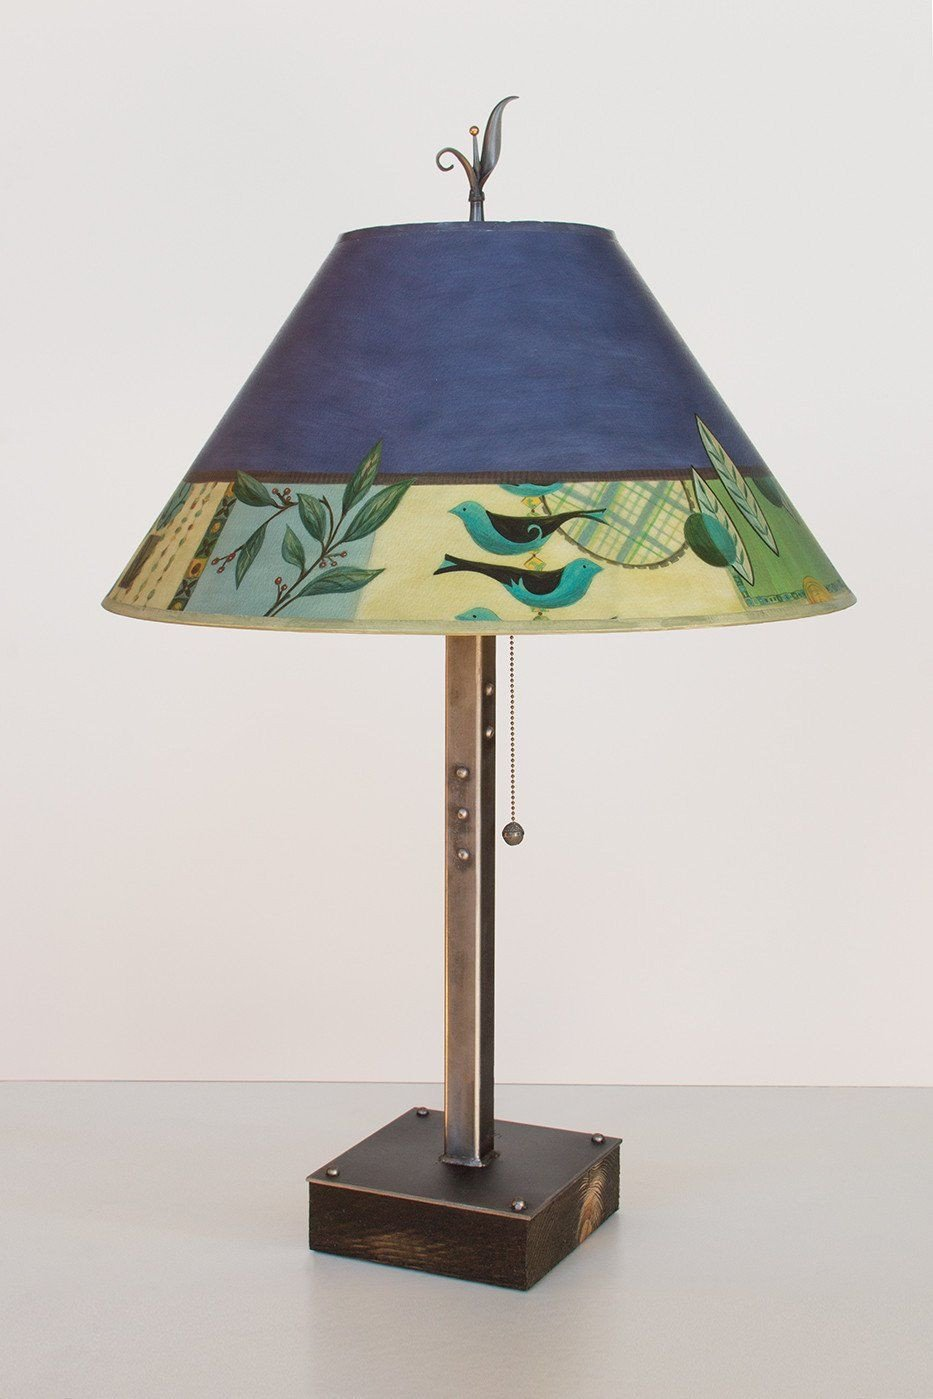 Steel Table Lamp on Wood with Large Conical Shade in New Capri Periwinkle